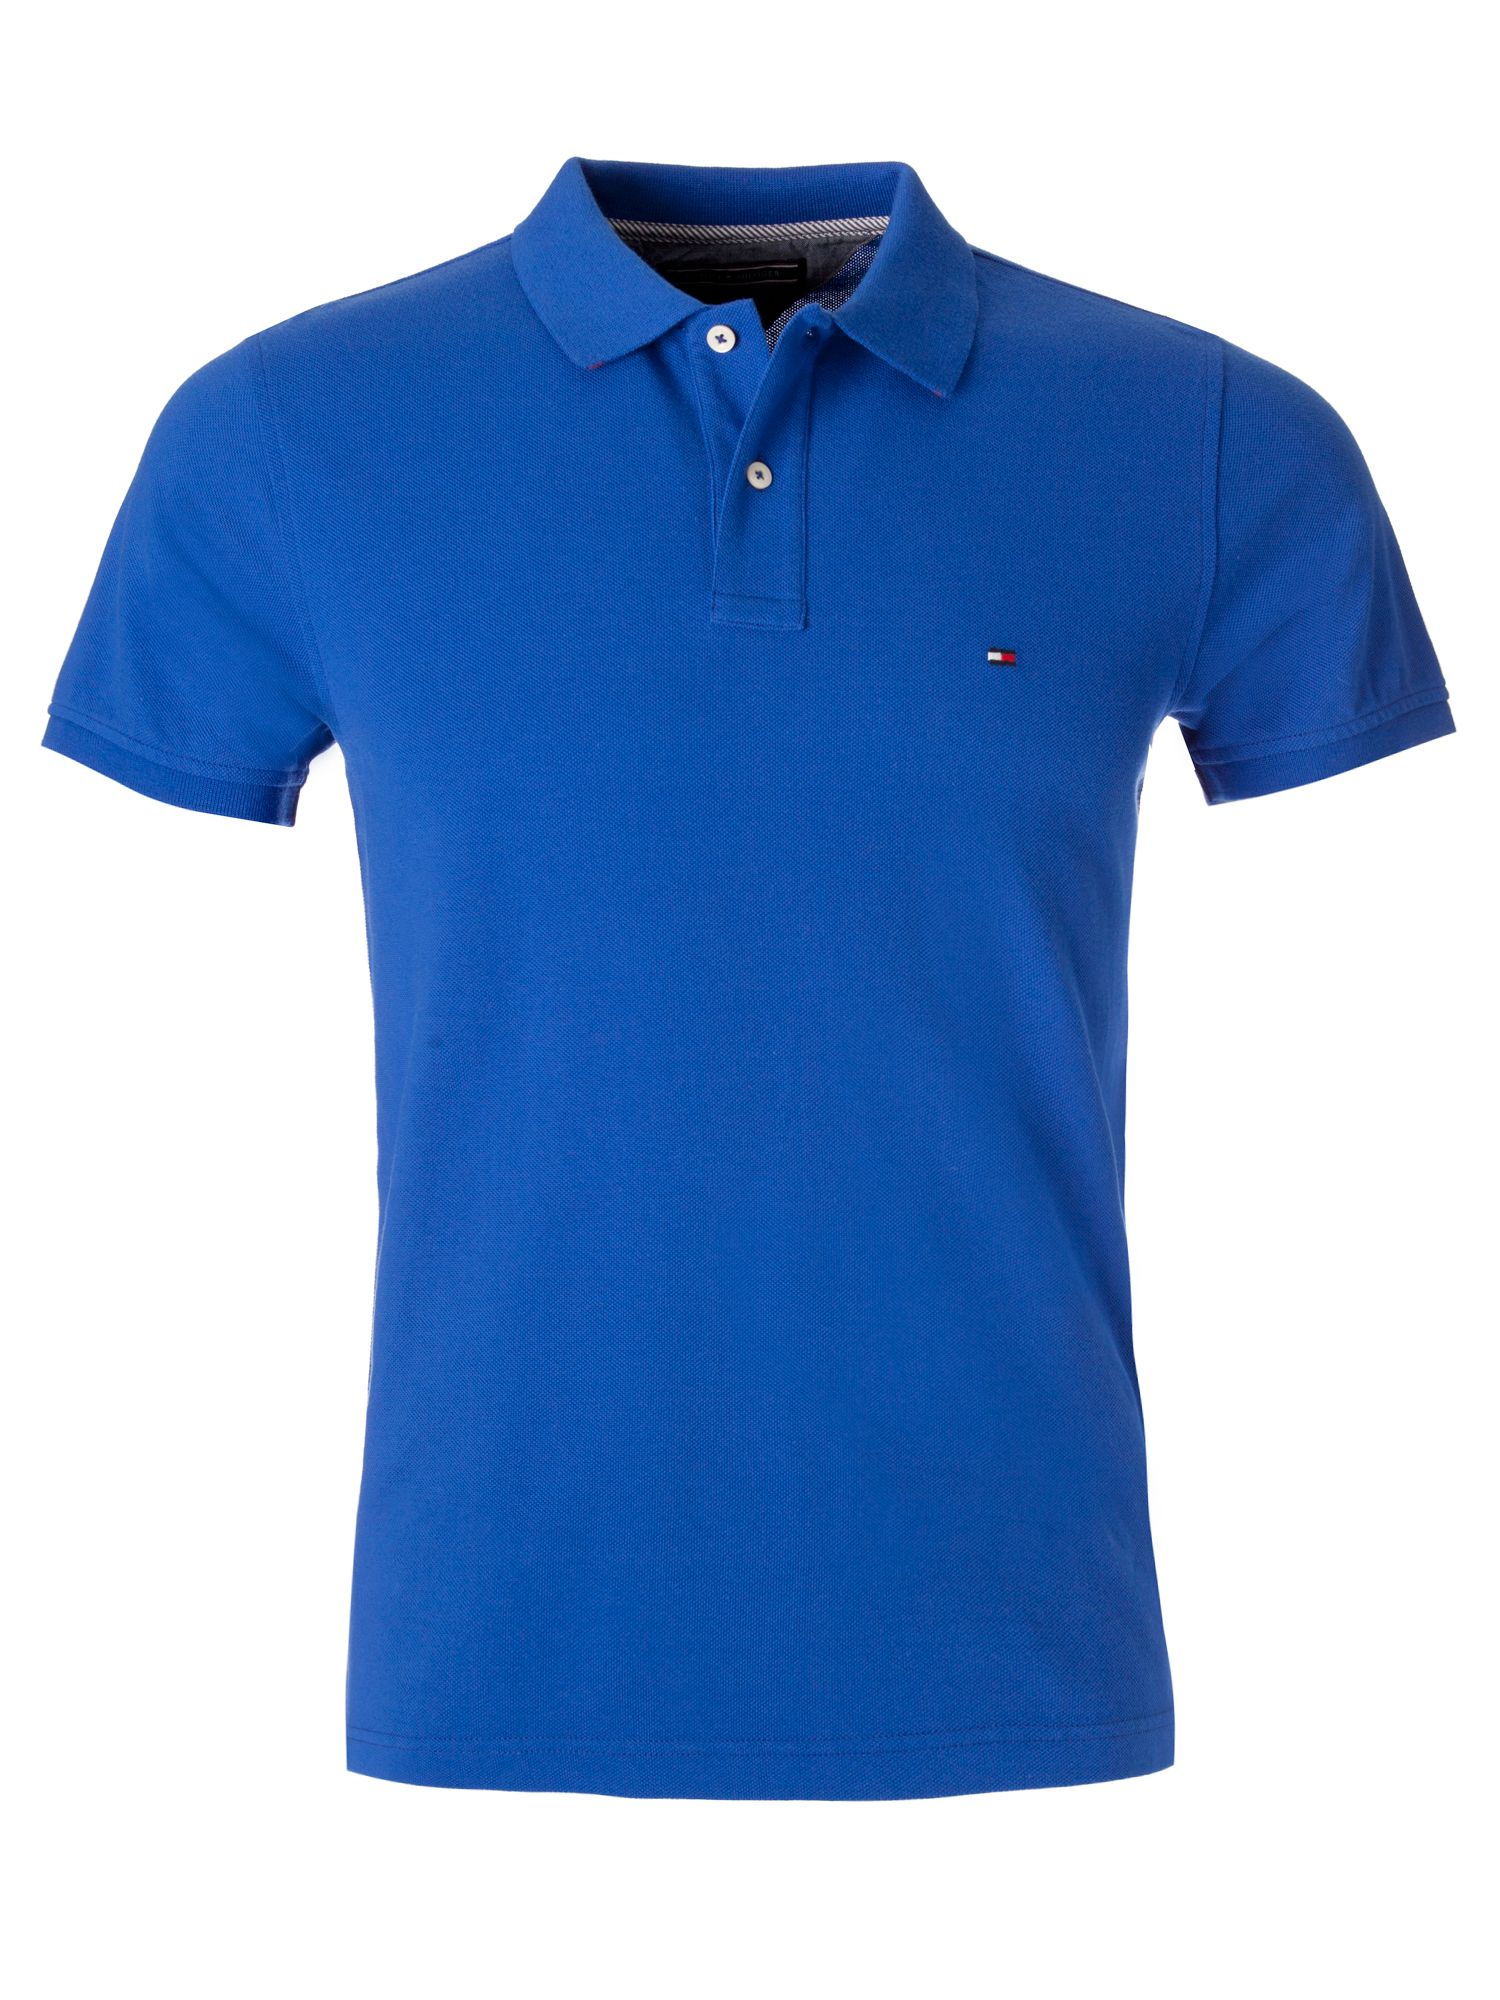 tommy hilfiger slim fit polo shirt in blue for men light. Black Bedroom Furniture Sets. Home Design Ideas